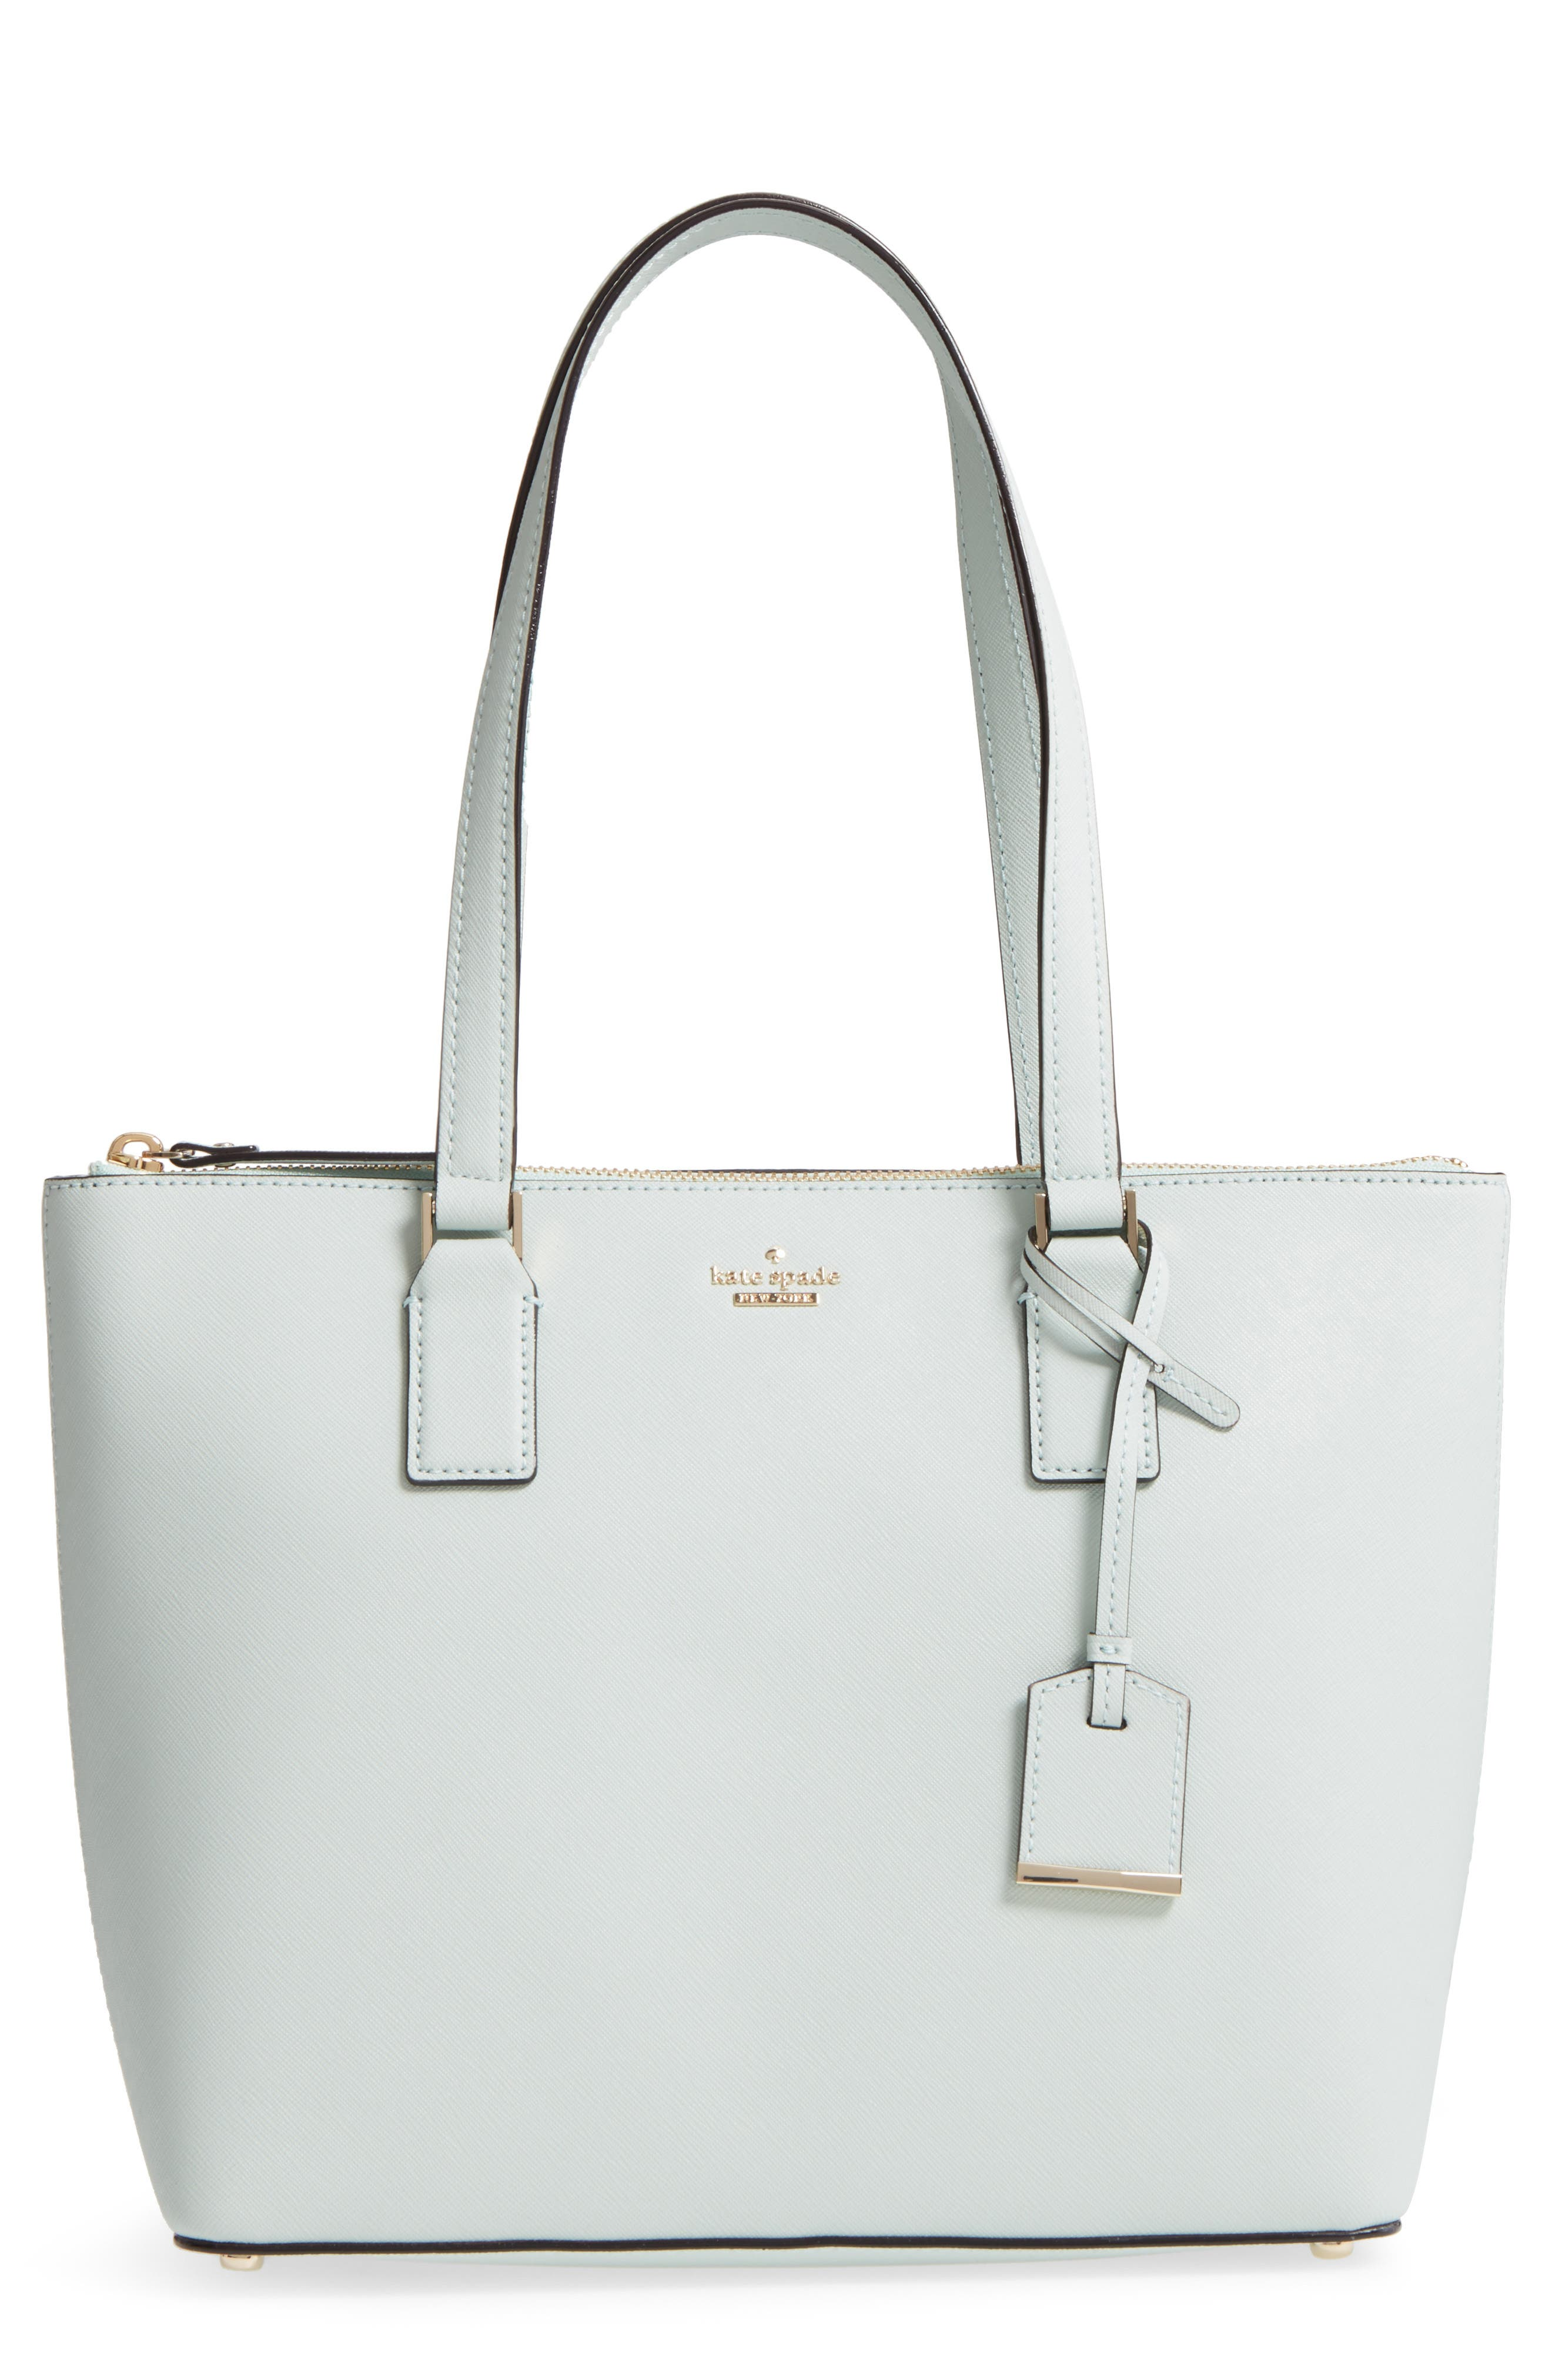 cameron street - small lucie leather tote,                             Main thumbnail 1, color,                             Misty Mint